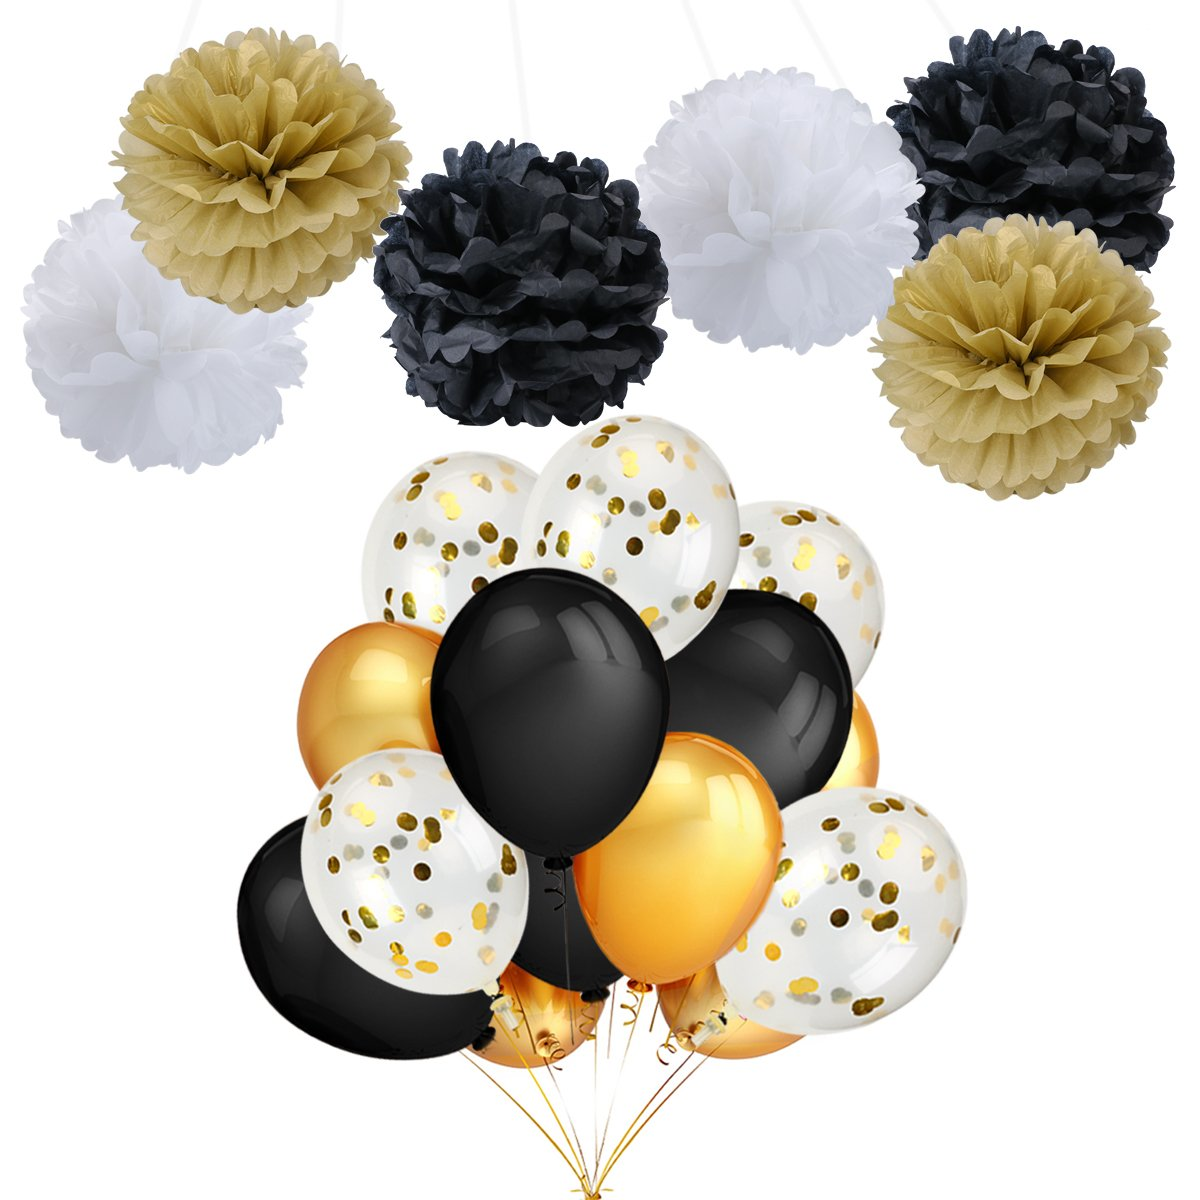 LeeSky Party Balloons Decorations,12 Pack 12 Inch Gold Confetti Balloons,40 Pack Gold & Black Color Party Balloons and Tissue Paper Pom Poms Flowers -Wedding Birthday Halloween Party Supplies